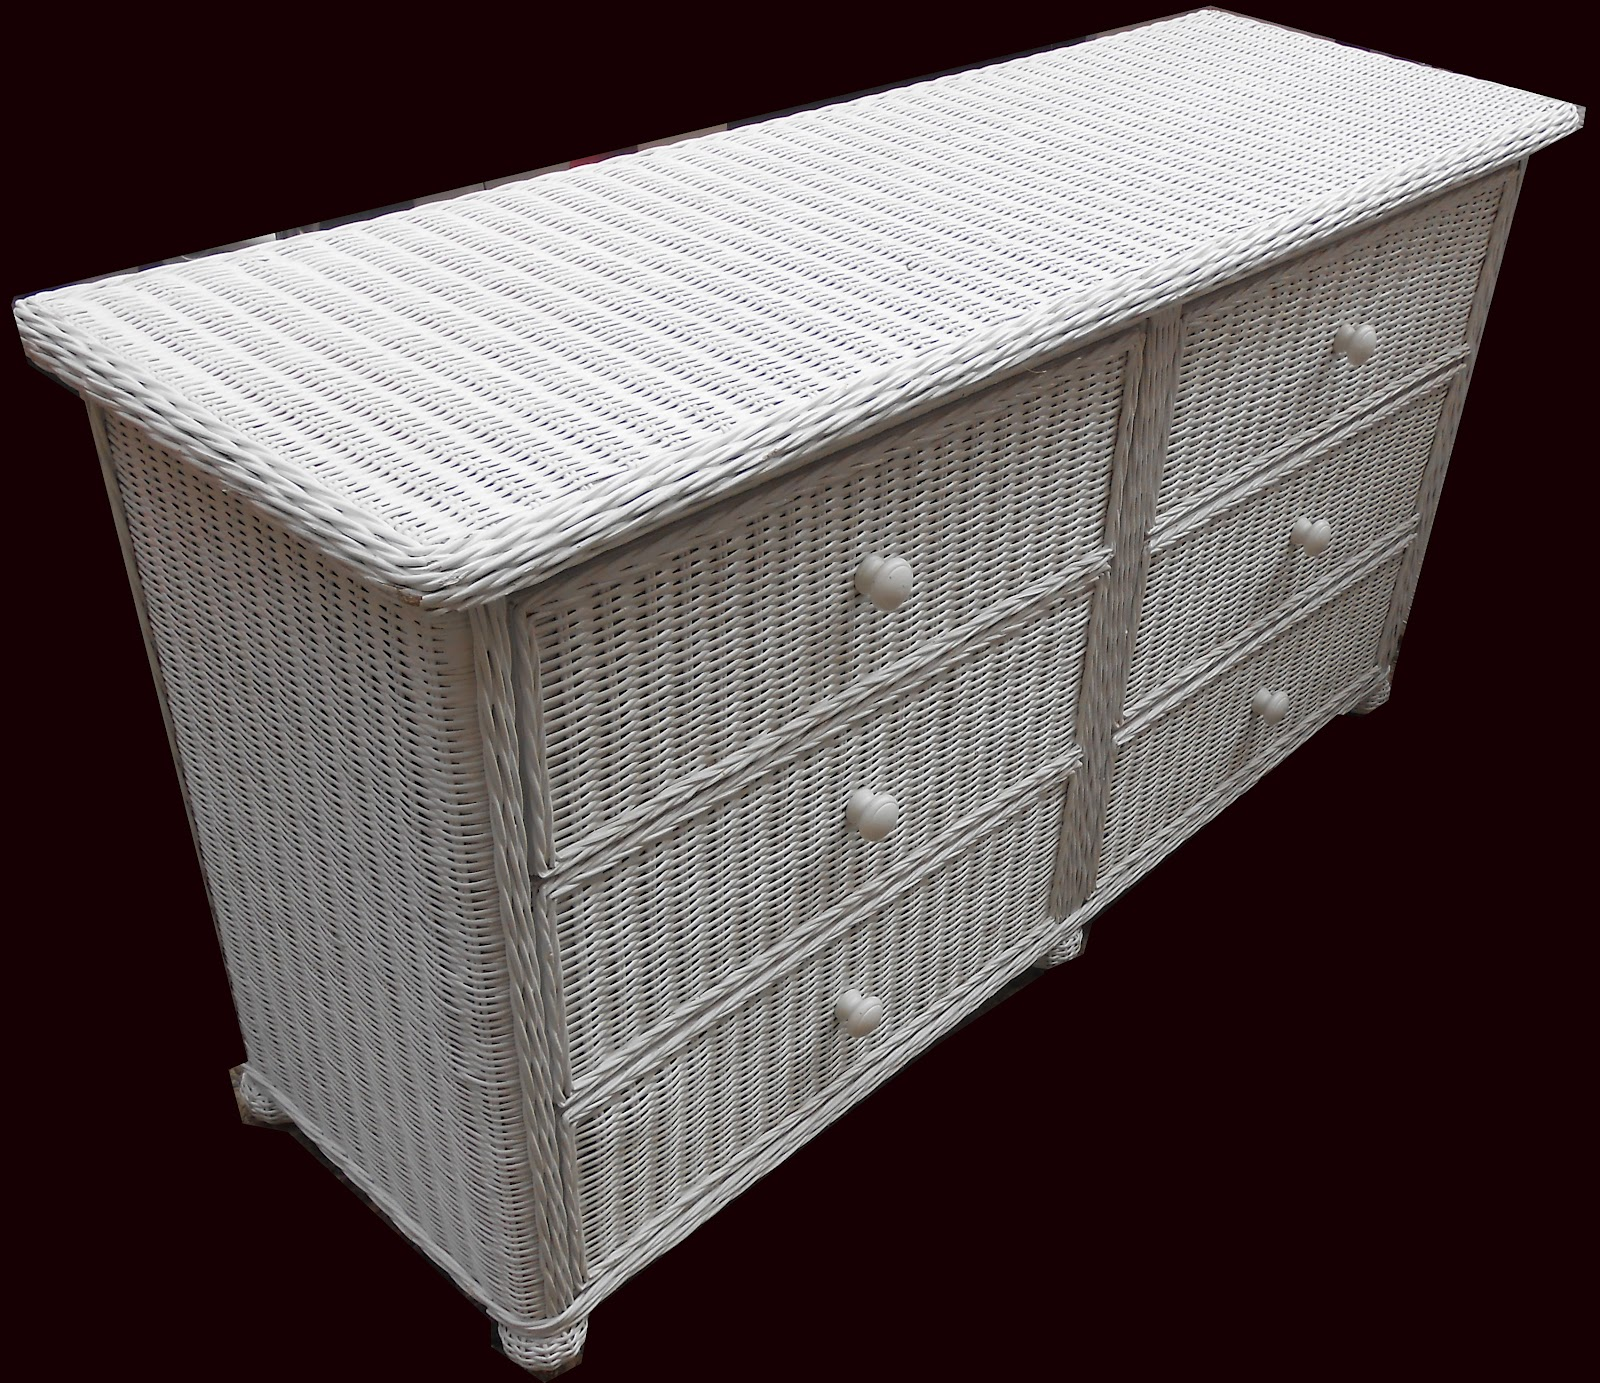 uhuru furniture collectibles 3 piece white wicker 13869 | wickerdresser